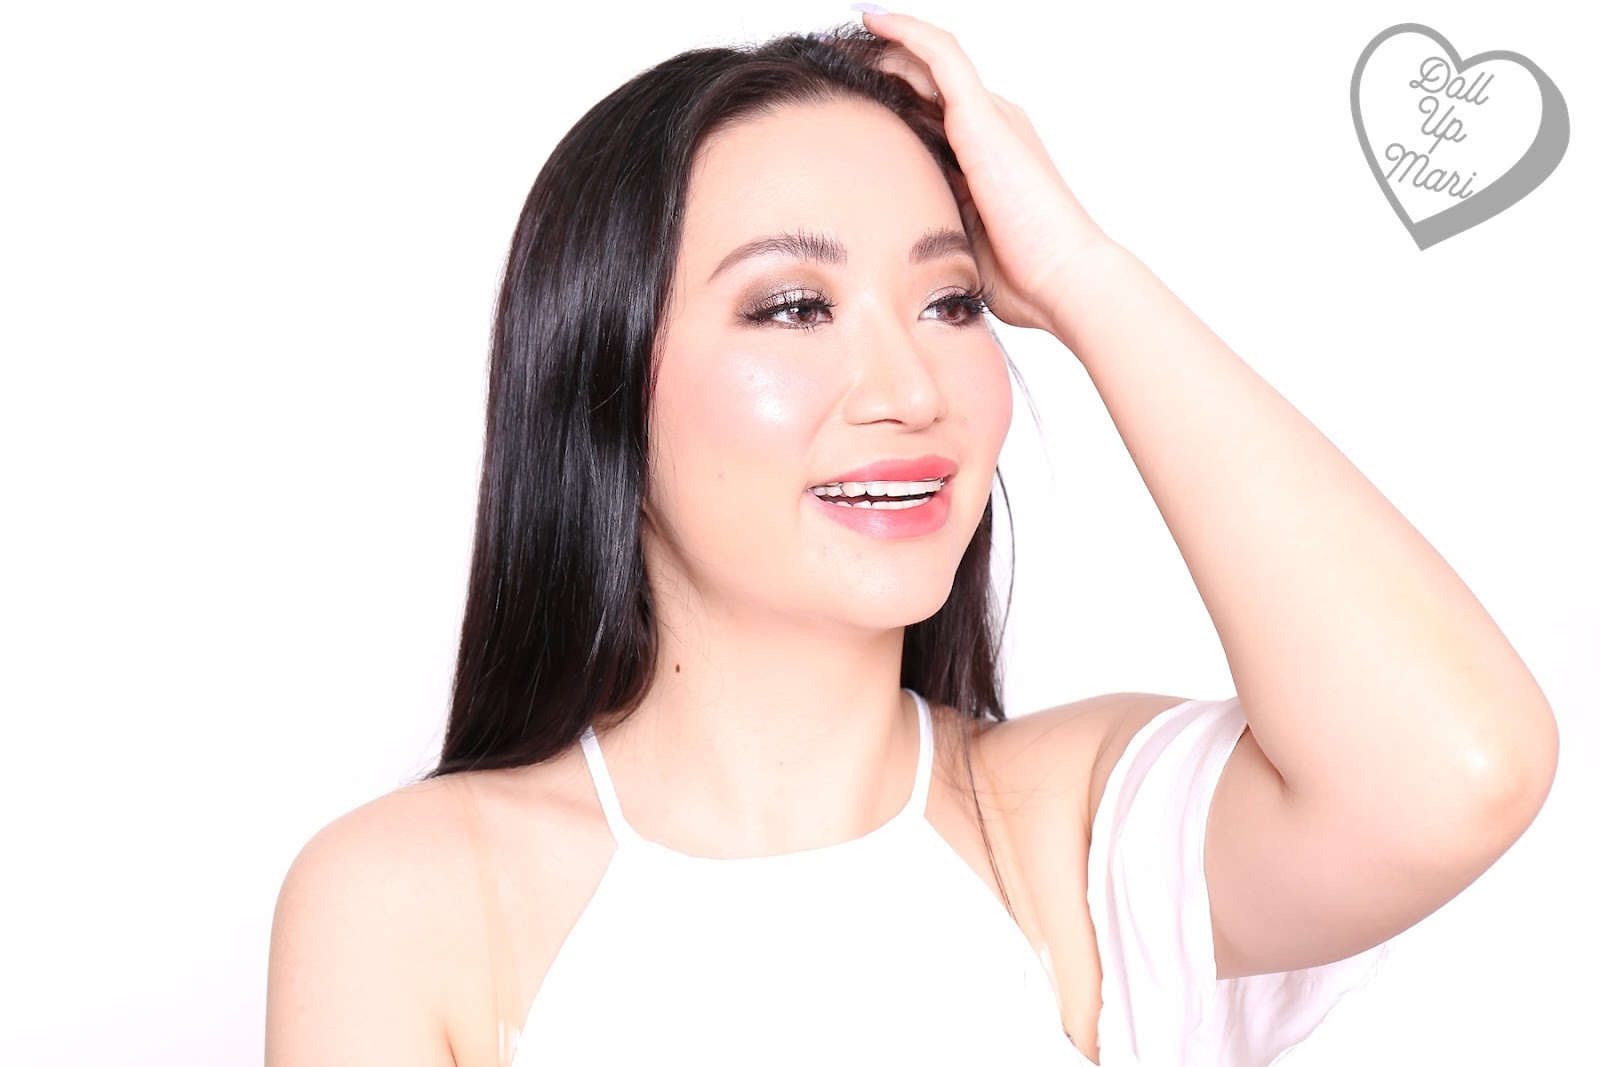 Mari wearing both sides of BLK Cosmetics K-Beauty K-Drama All-Day Intense Matte Lipstick in the shade of Dandelion